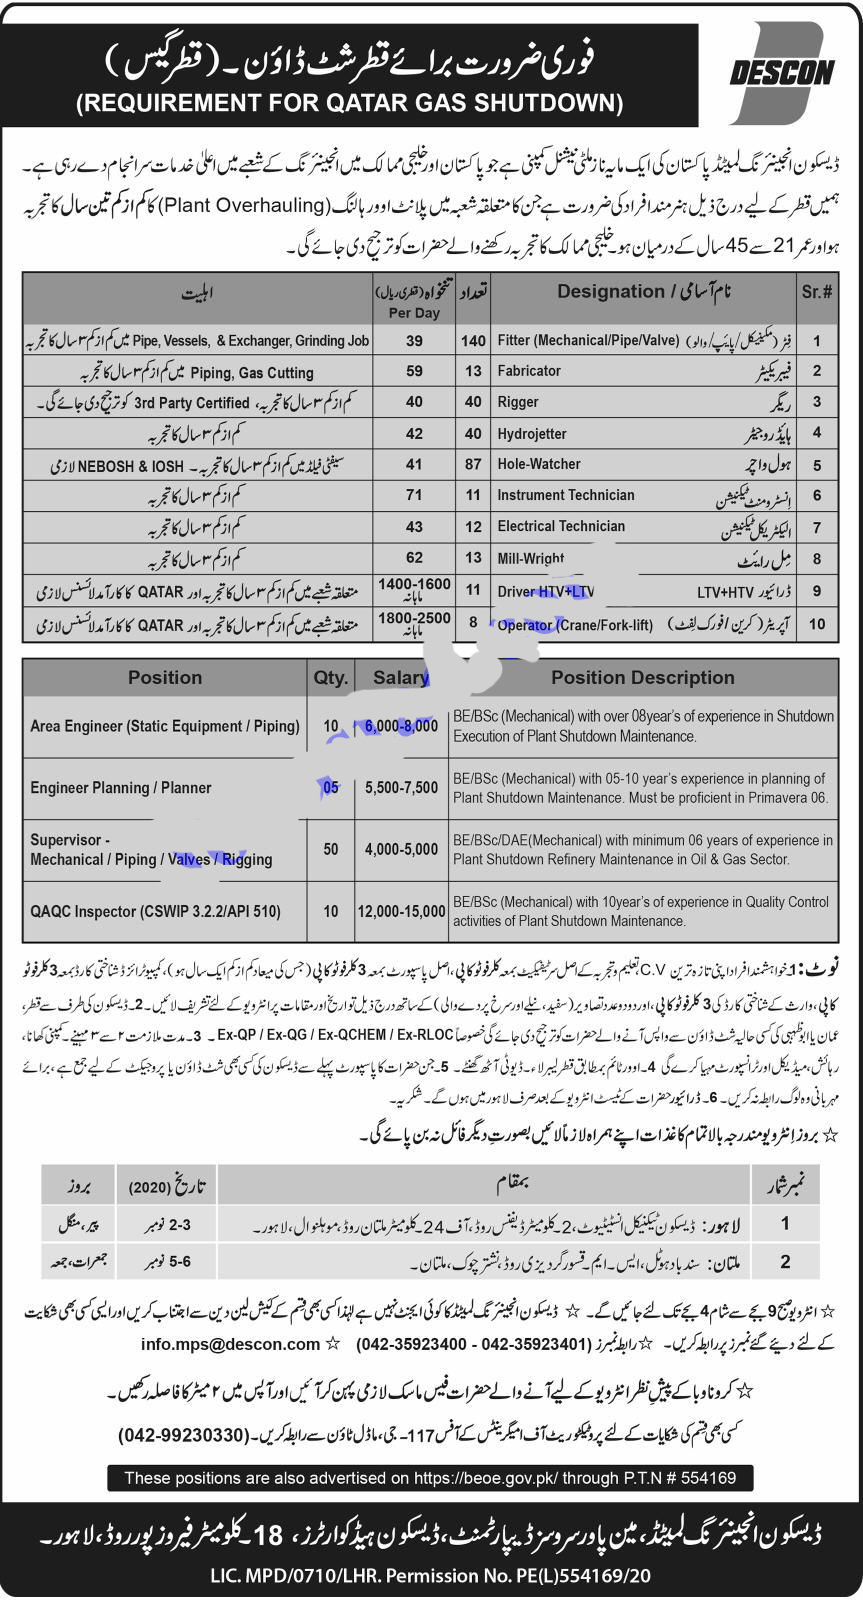 DESCON Engineering Limited Jobs 2020 Latest Announcement